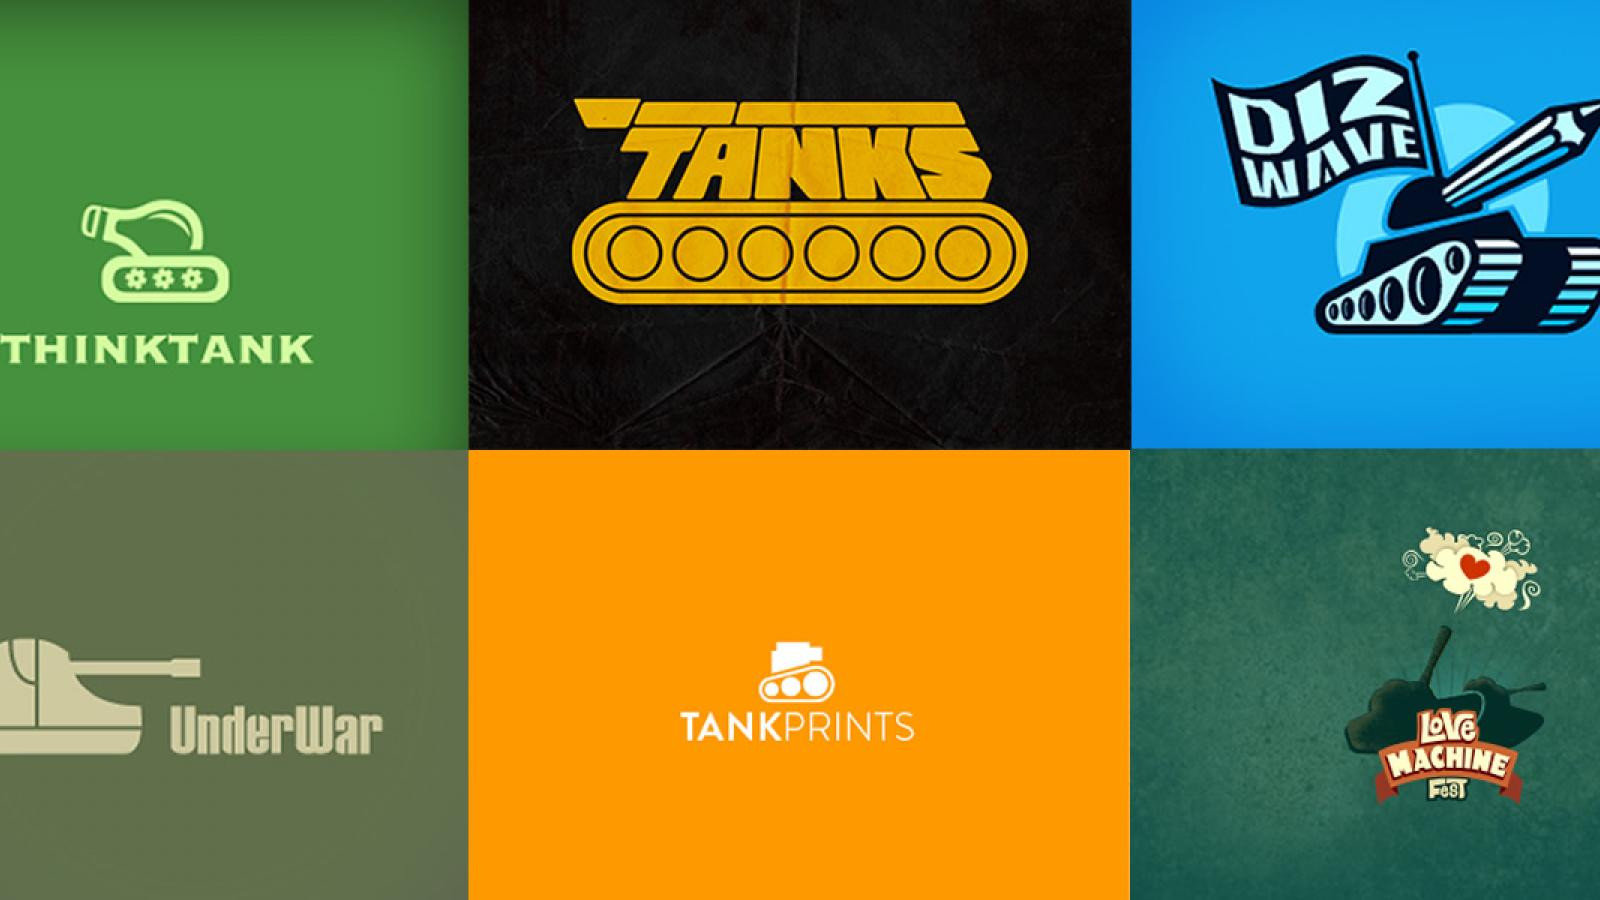 Logo Design: Tanks